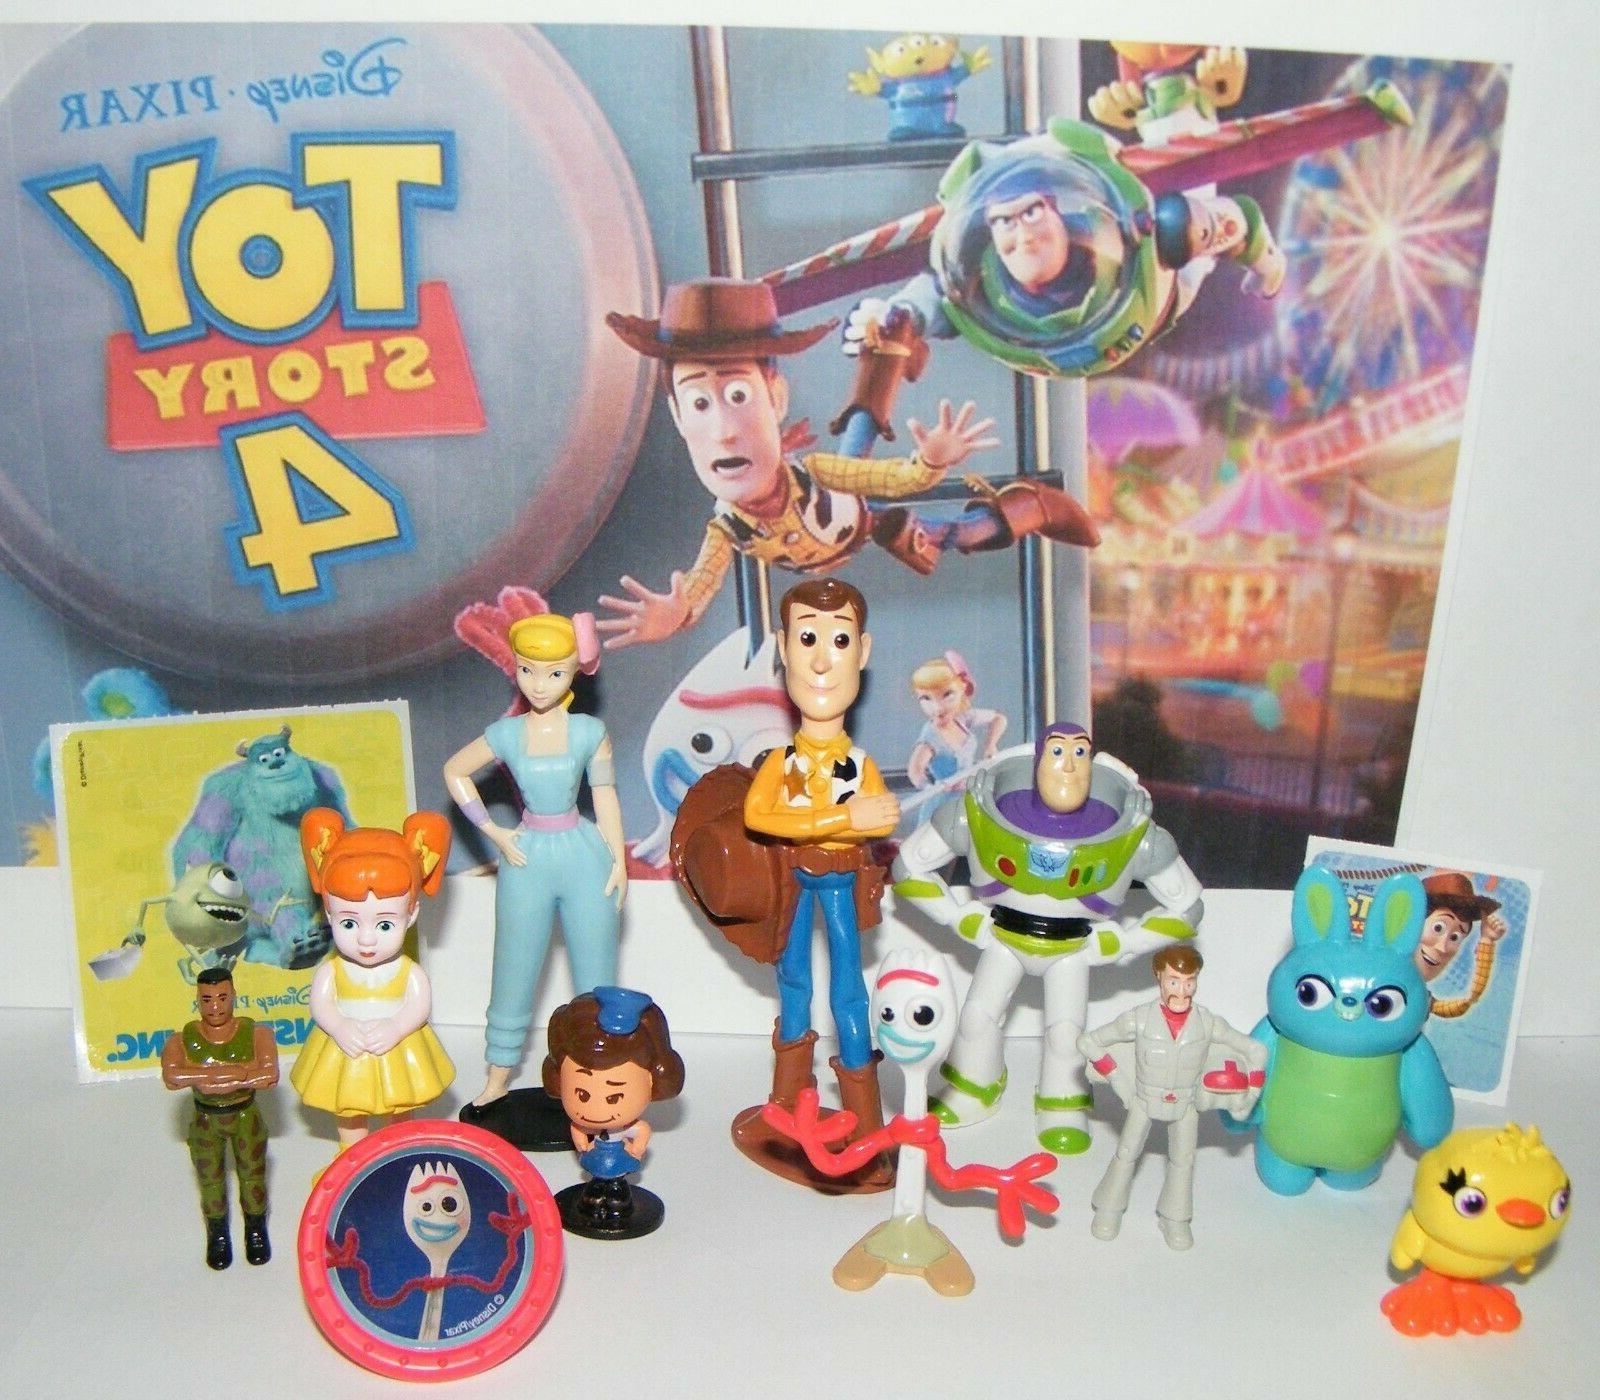 toy story 4 movie figure set of